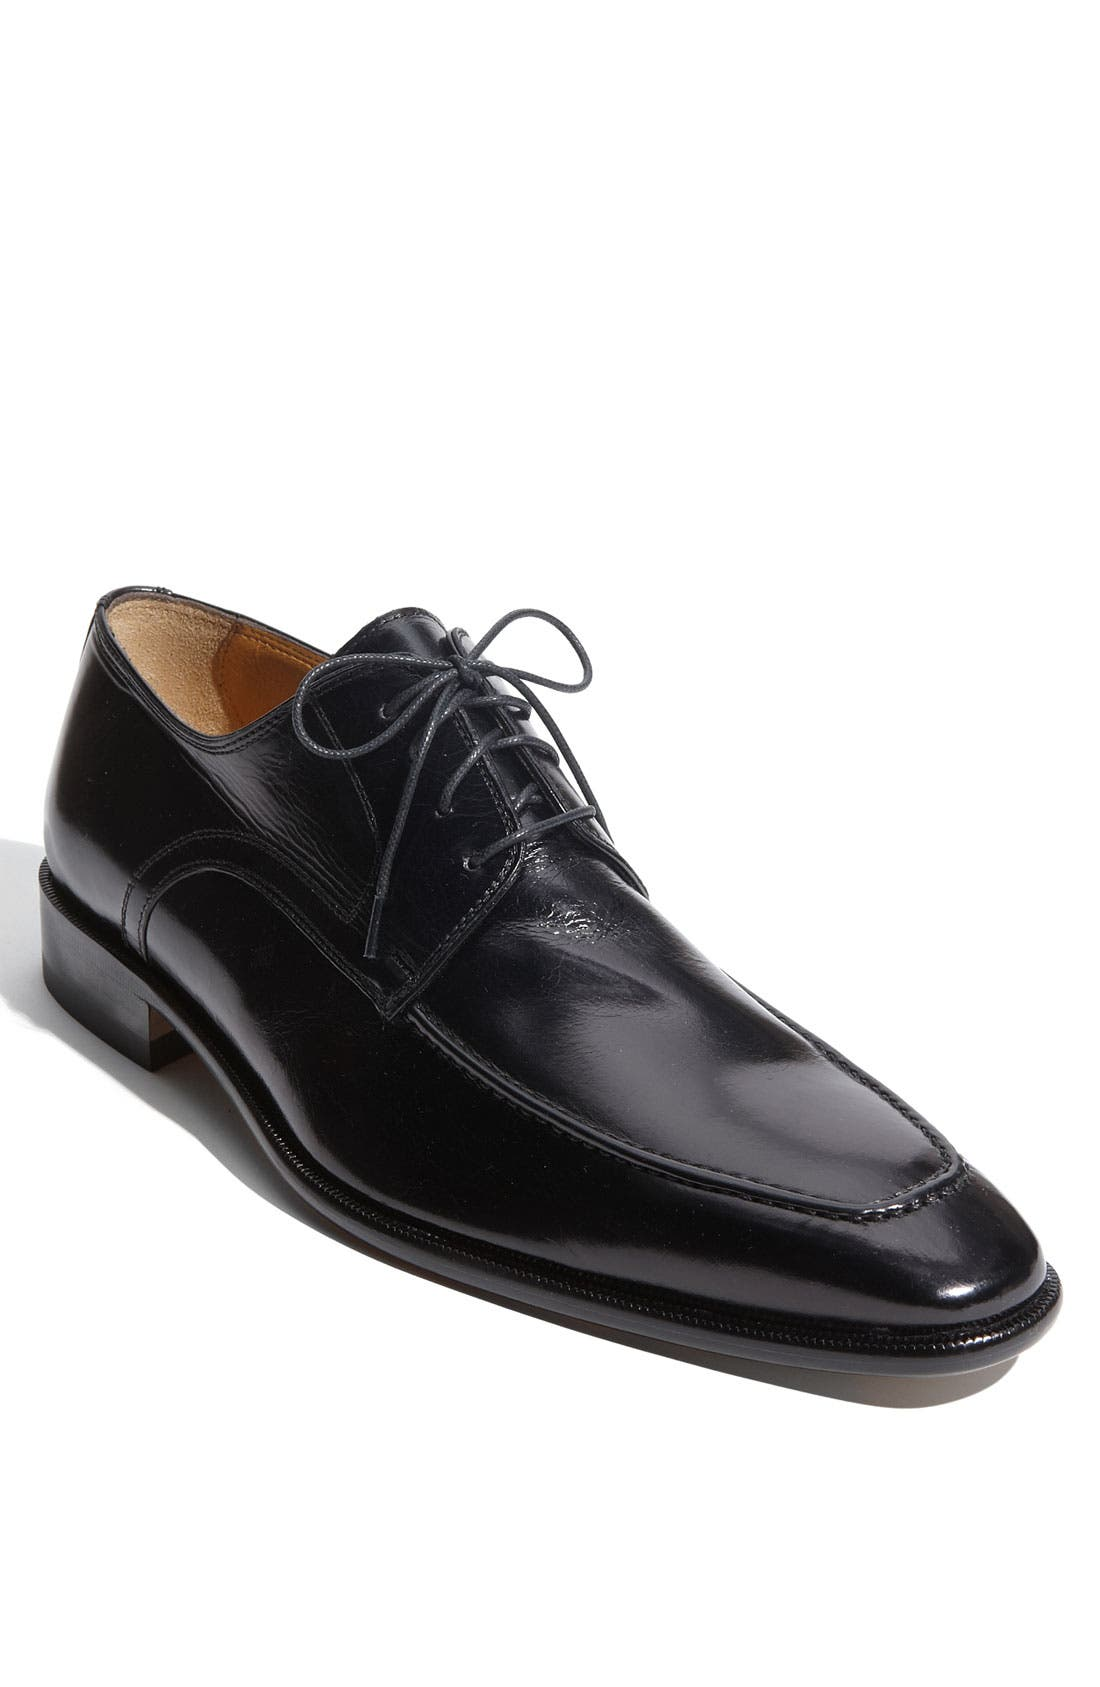 Alternate Image 1 Selected - John W. Nordstrom® 'Arturo' Oxford